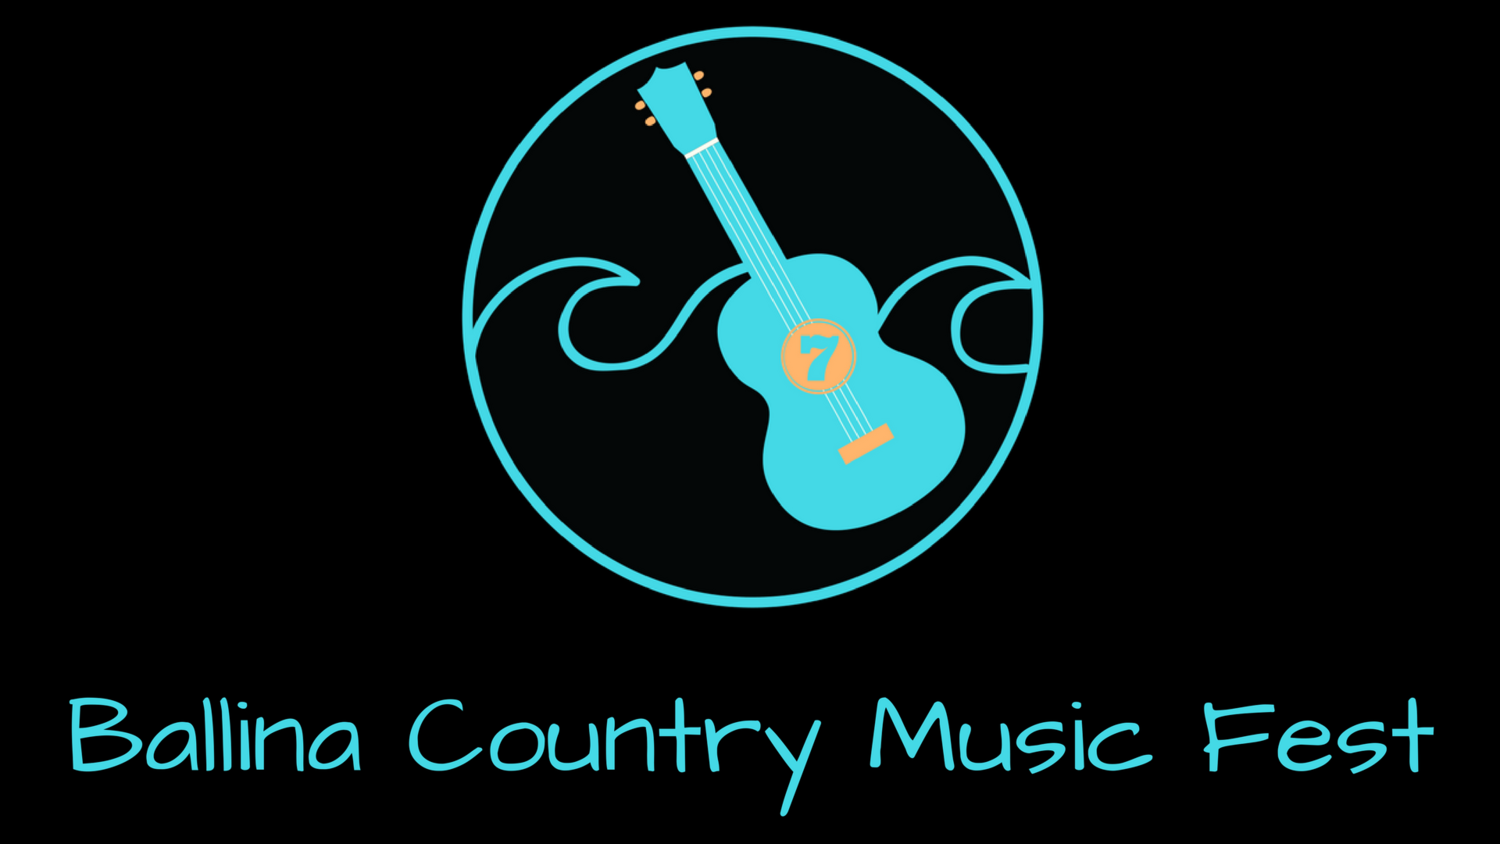 2018 Ballina Country Music Fest